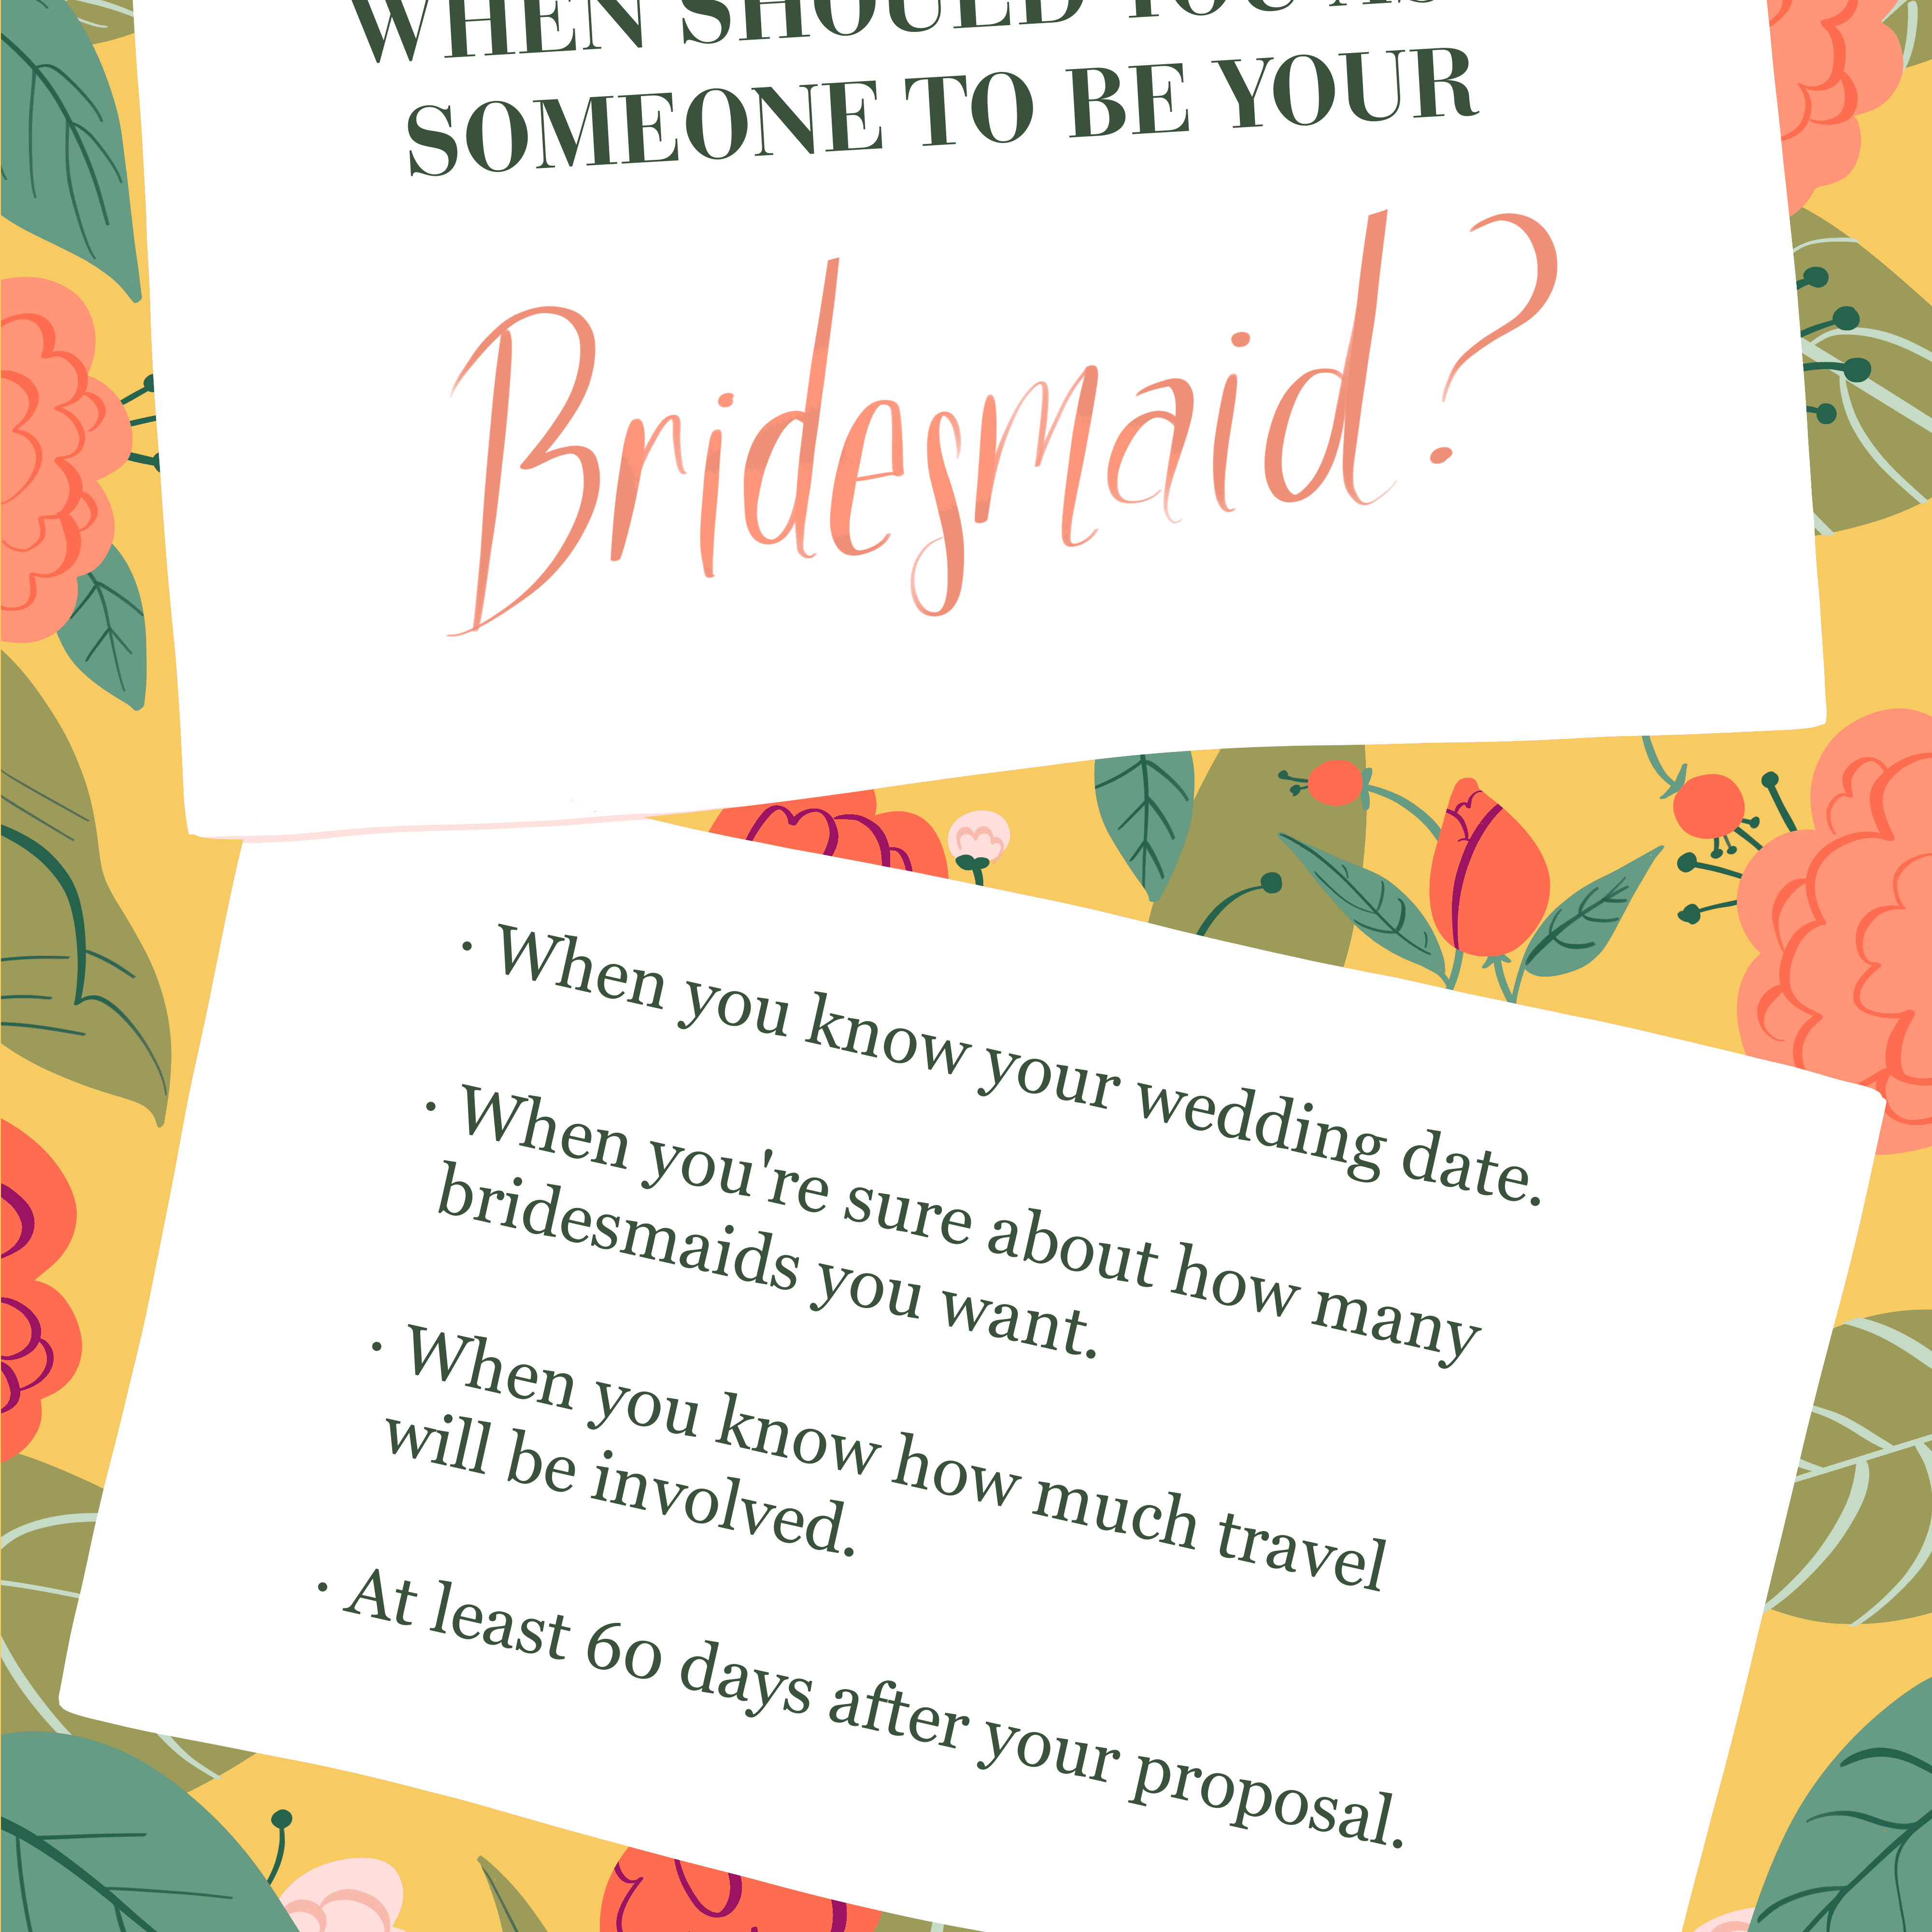 When Should You Ask Someone To Be Your Bridesmaid?